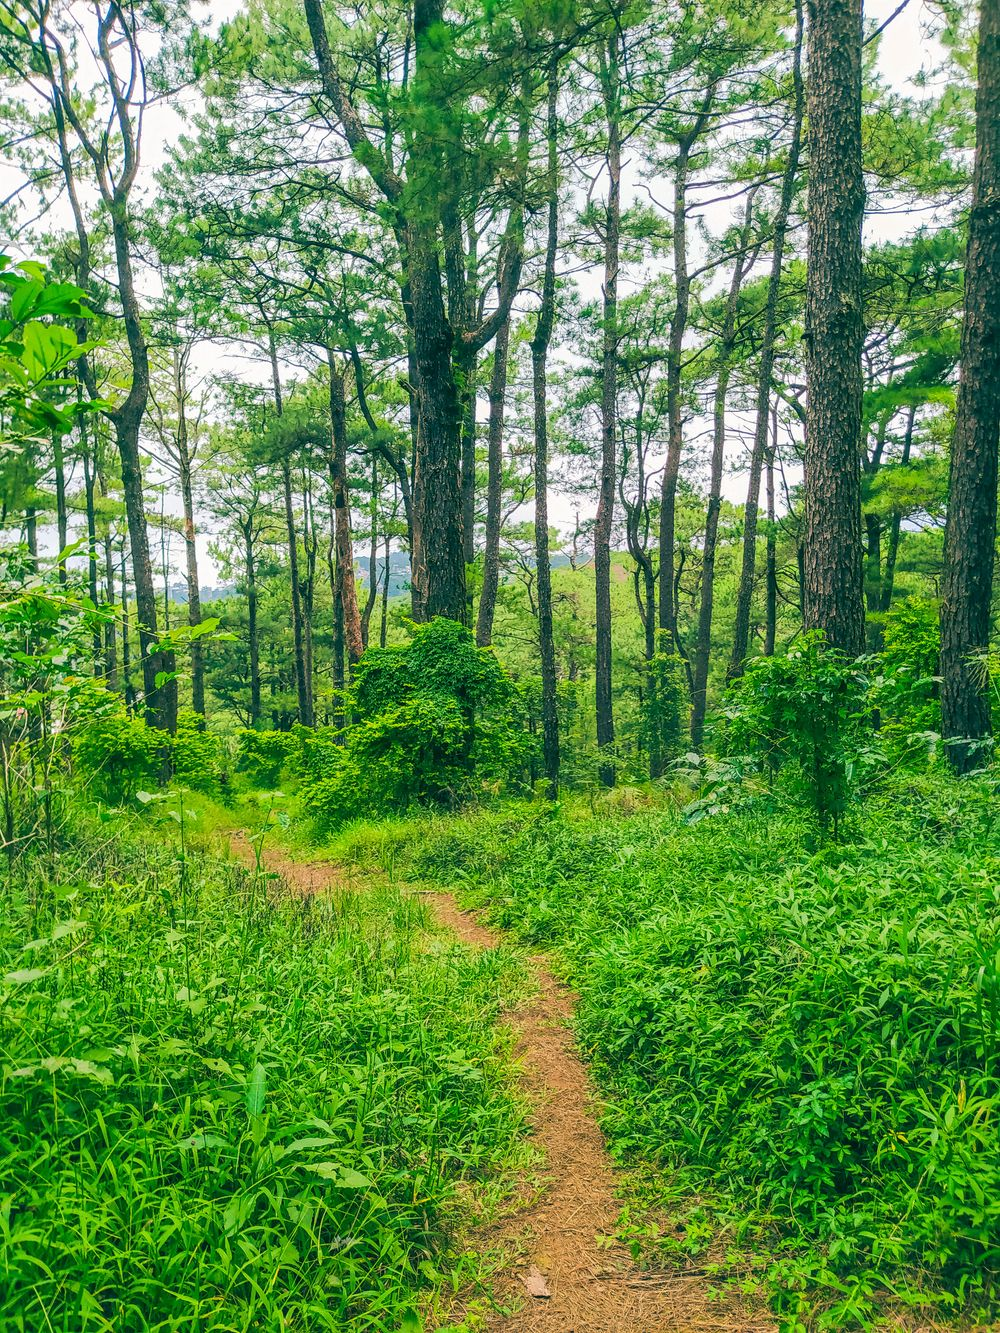 A brown dirt trail traversing through lush vegetation and tall trees in a forest